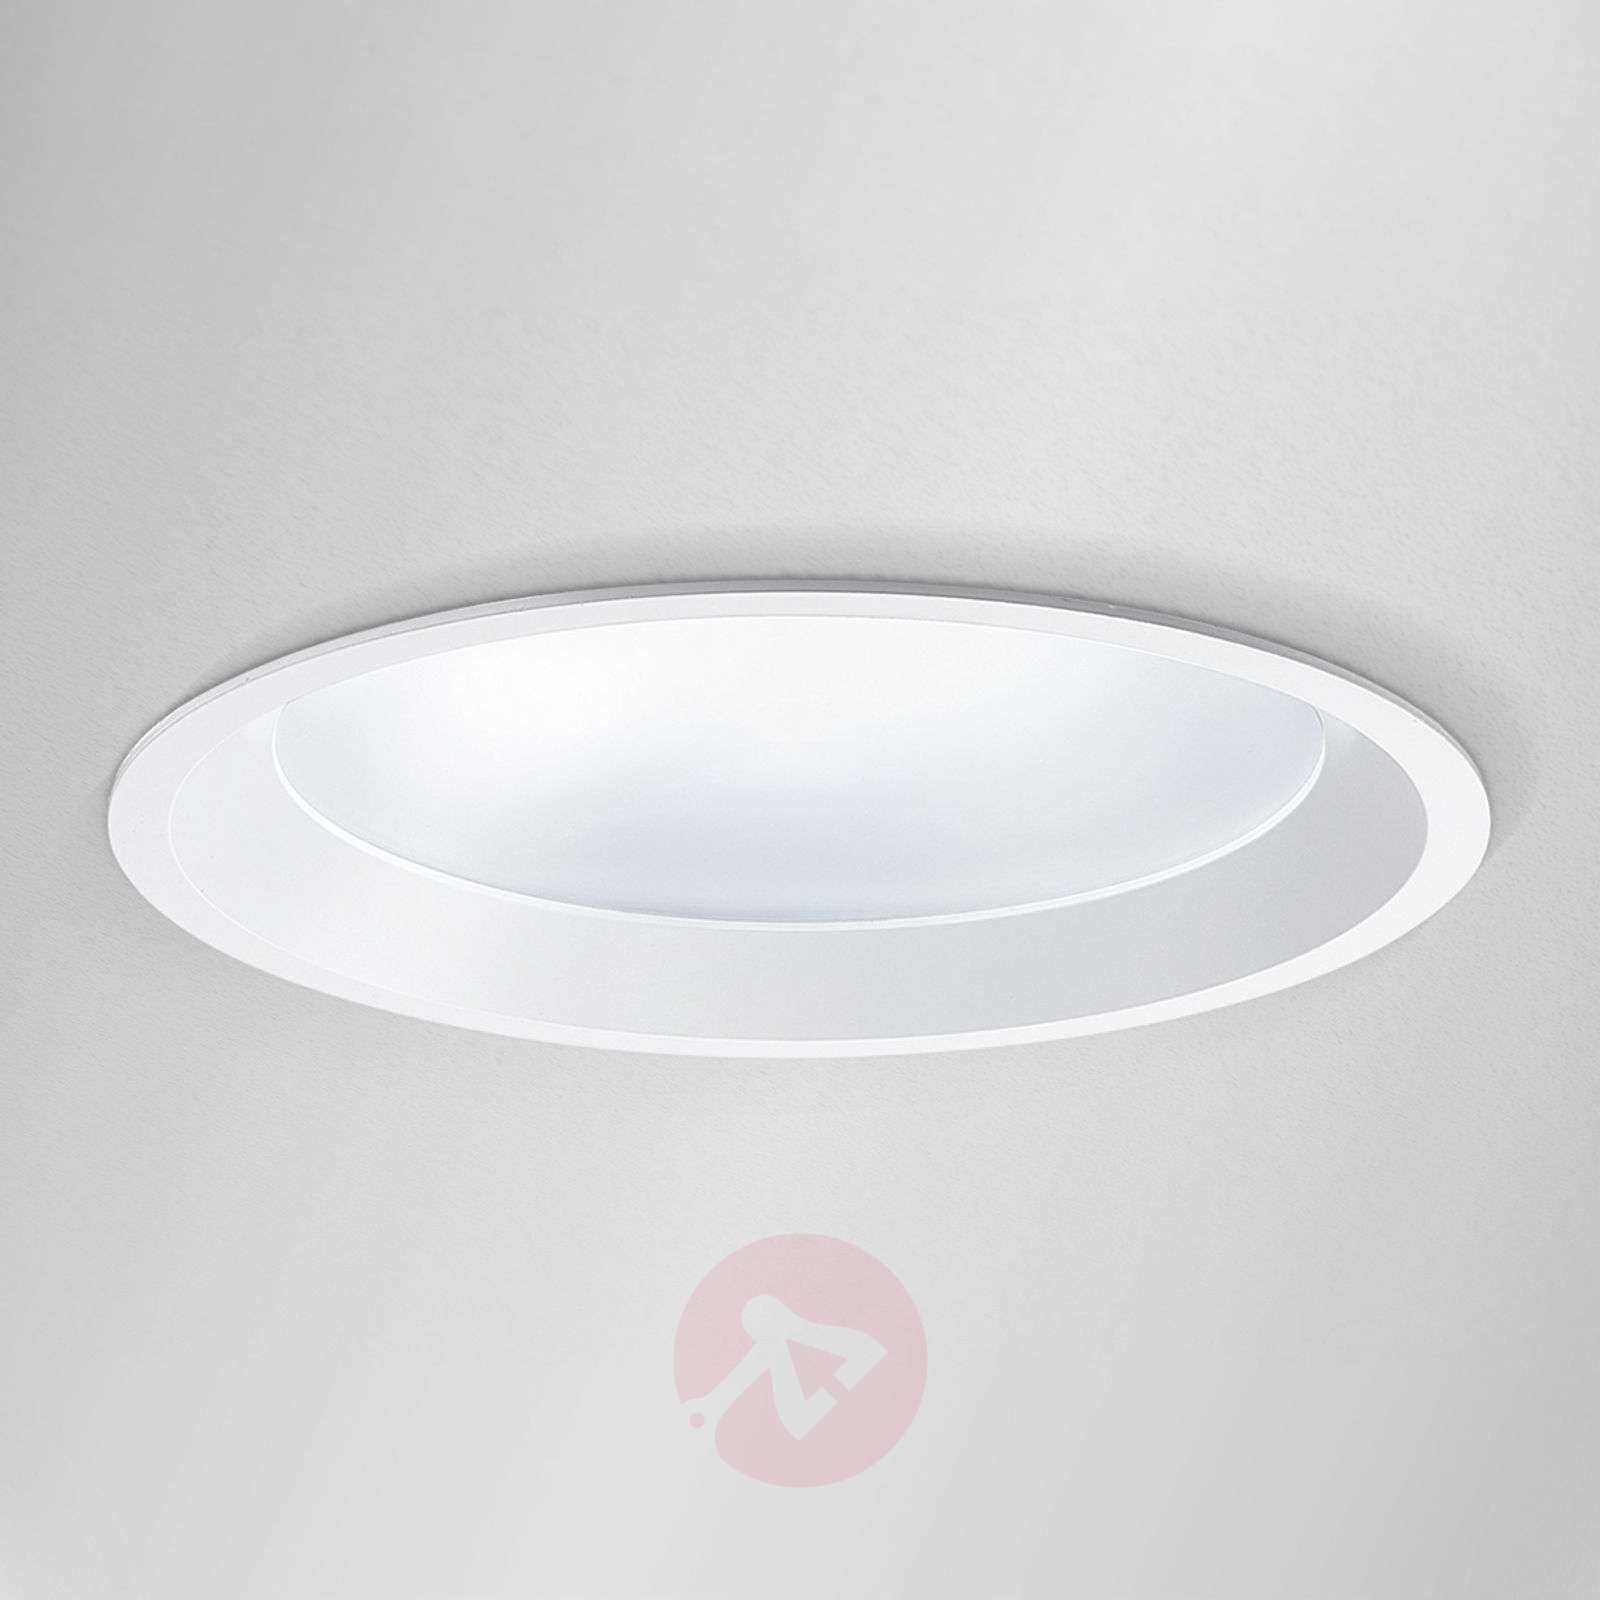 Diamètre 19 cm - downlight encastré LED Strato 190